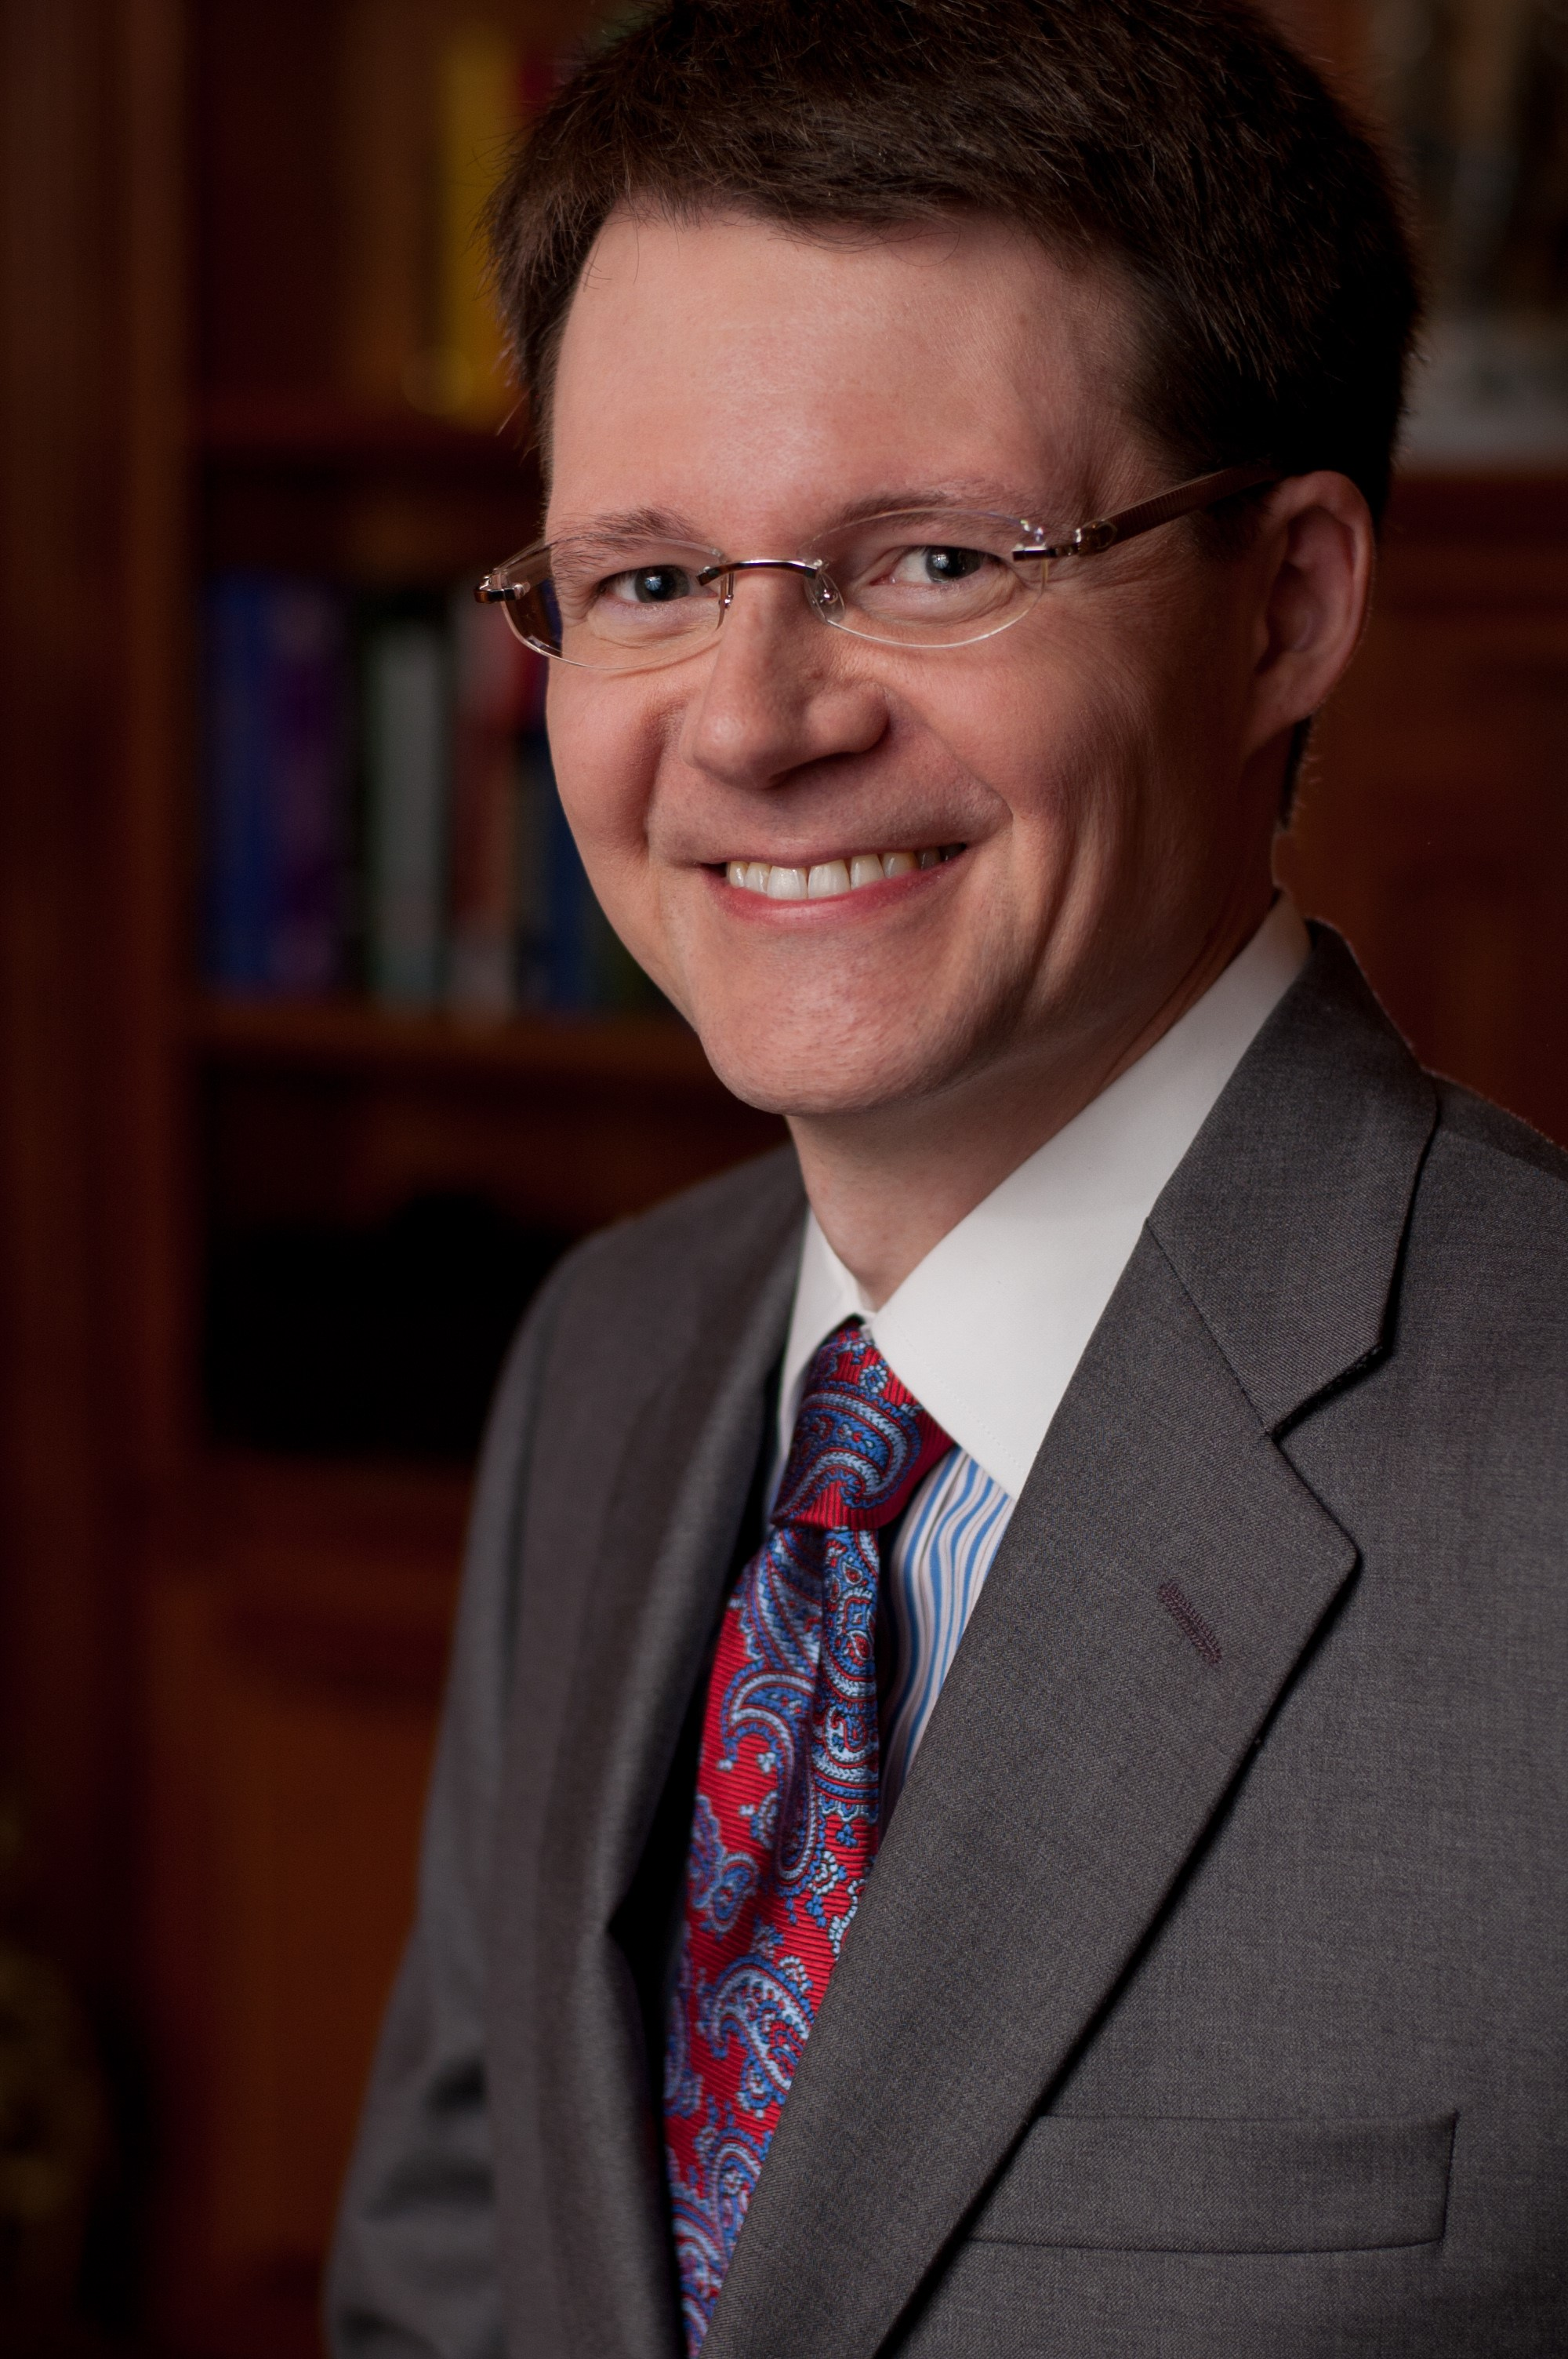 Dr Tim Black R Psych Joins Wounded Warriors: Dr. Tim Houchin, M.D. Discusses Kentucky's Alarming ADHD